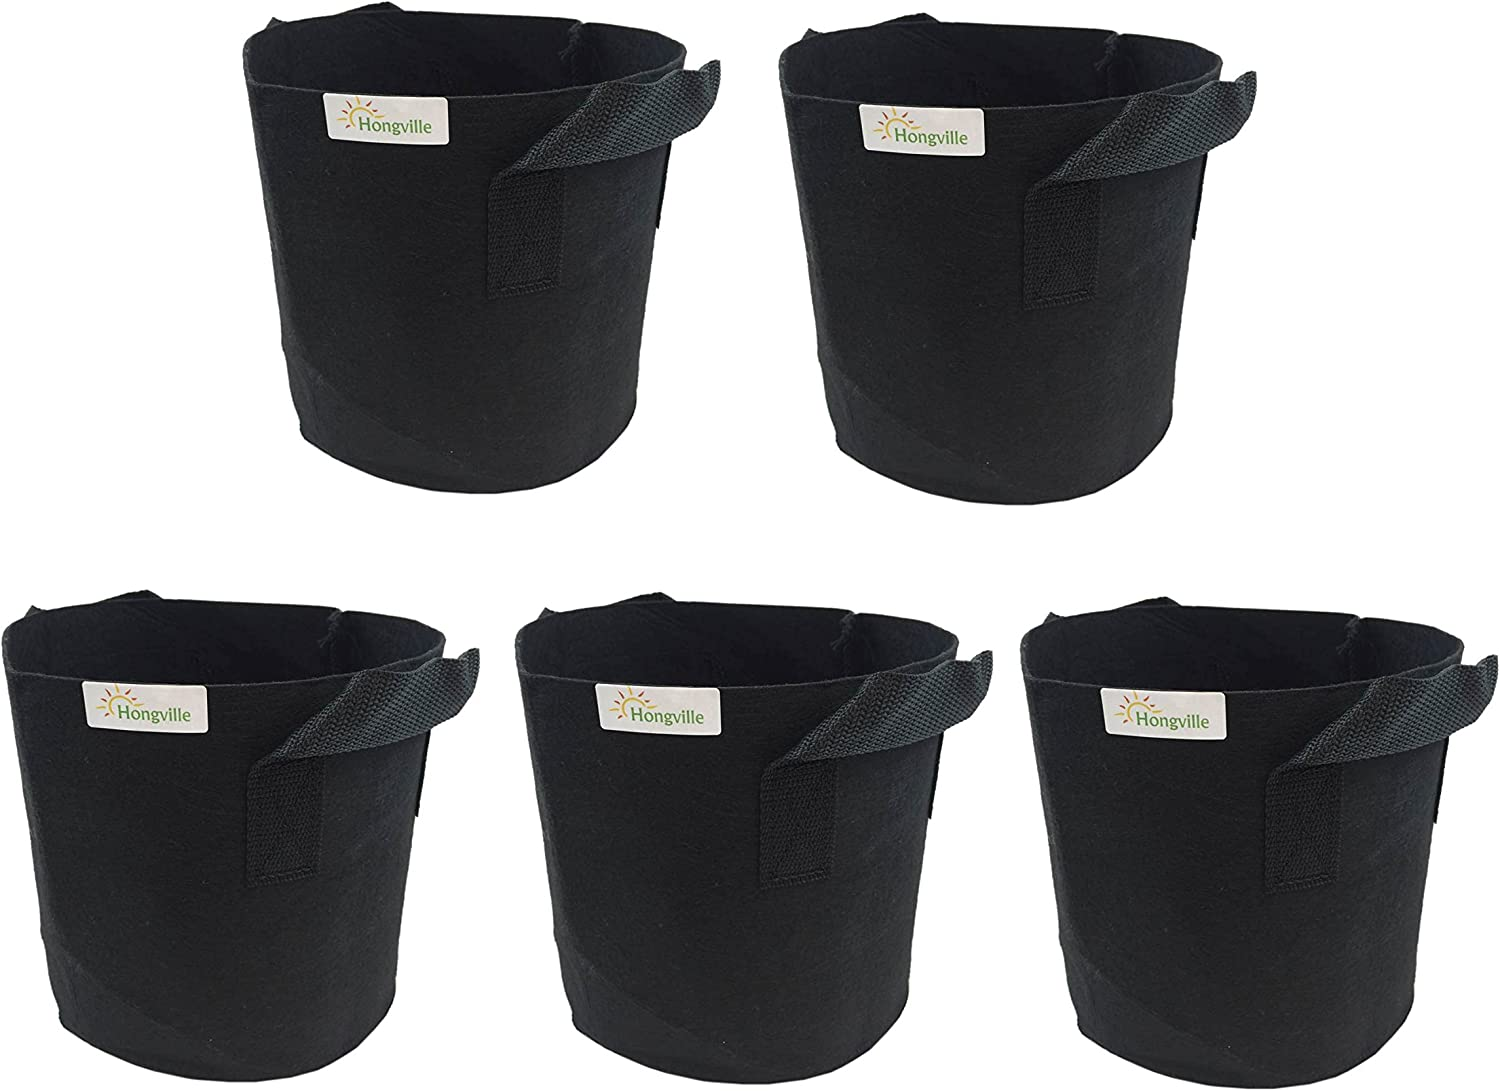 HONGVILLE 5-Pack Grow Bag Fabric Pots with Handles-Container Gardening Planter Pot for Tomatoes, Fruit, Vegetables, Flowers and Plants (5-Gallons w/Handles)